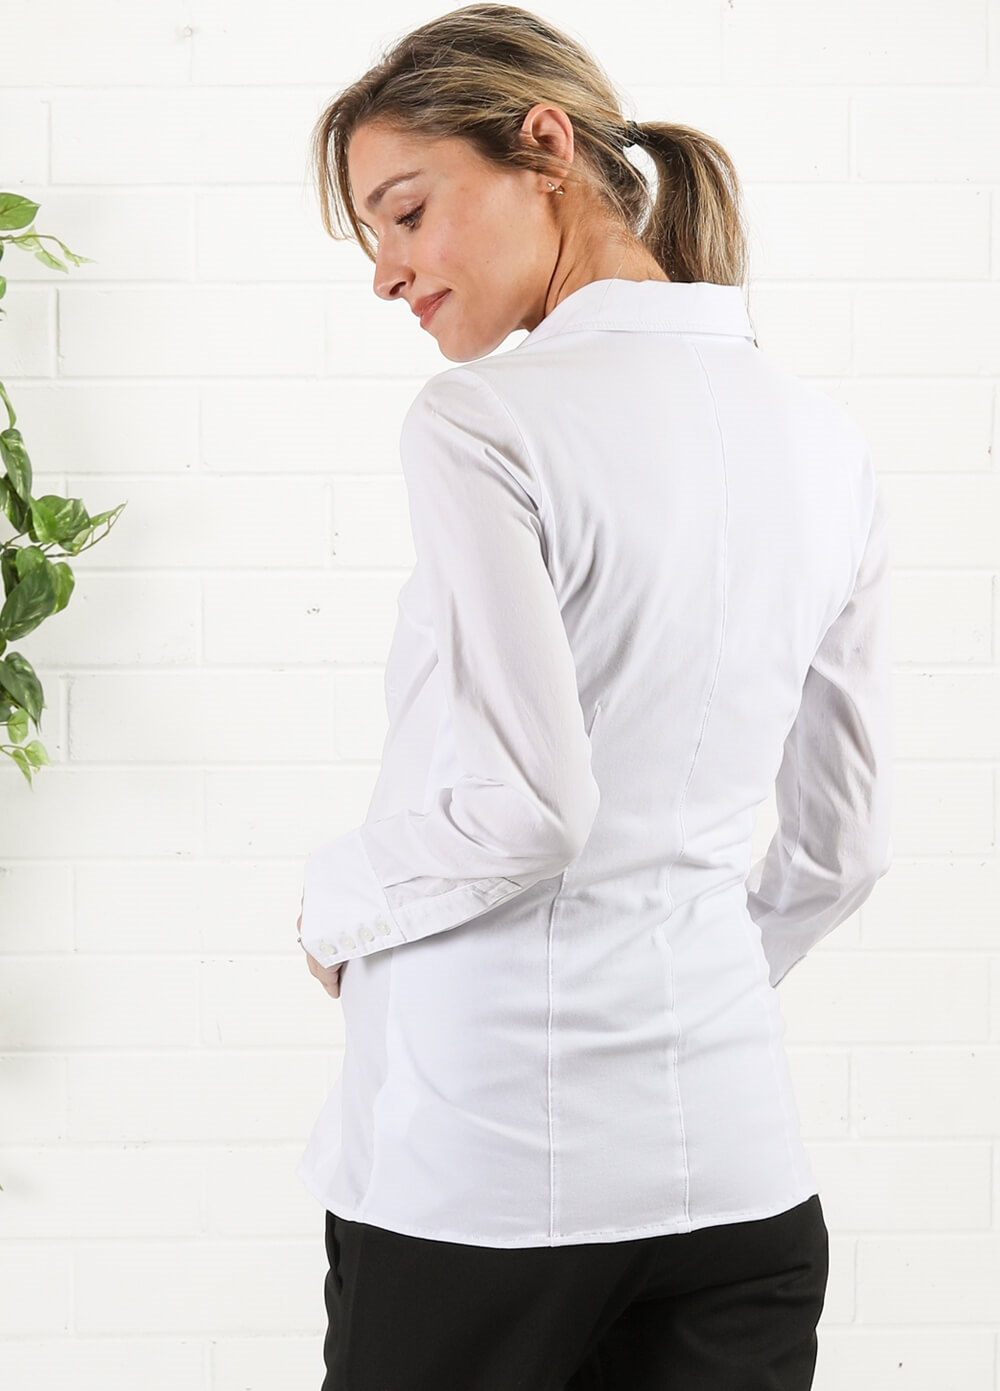 White Collared Maternity Work Shirt by Queen mum | Queen Bee